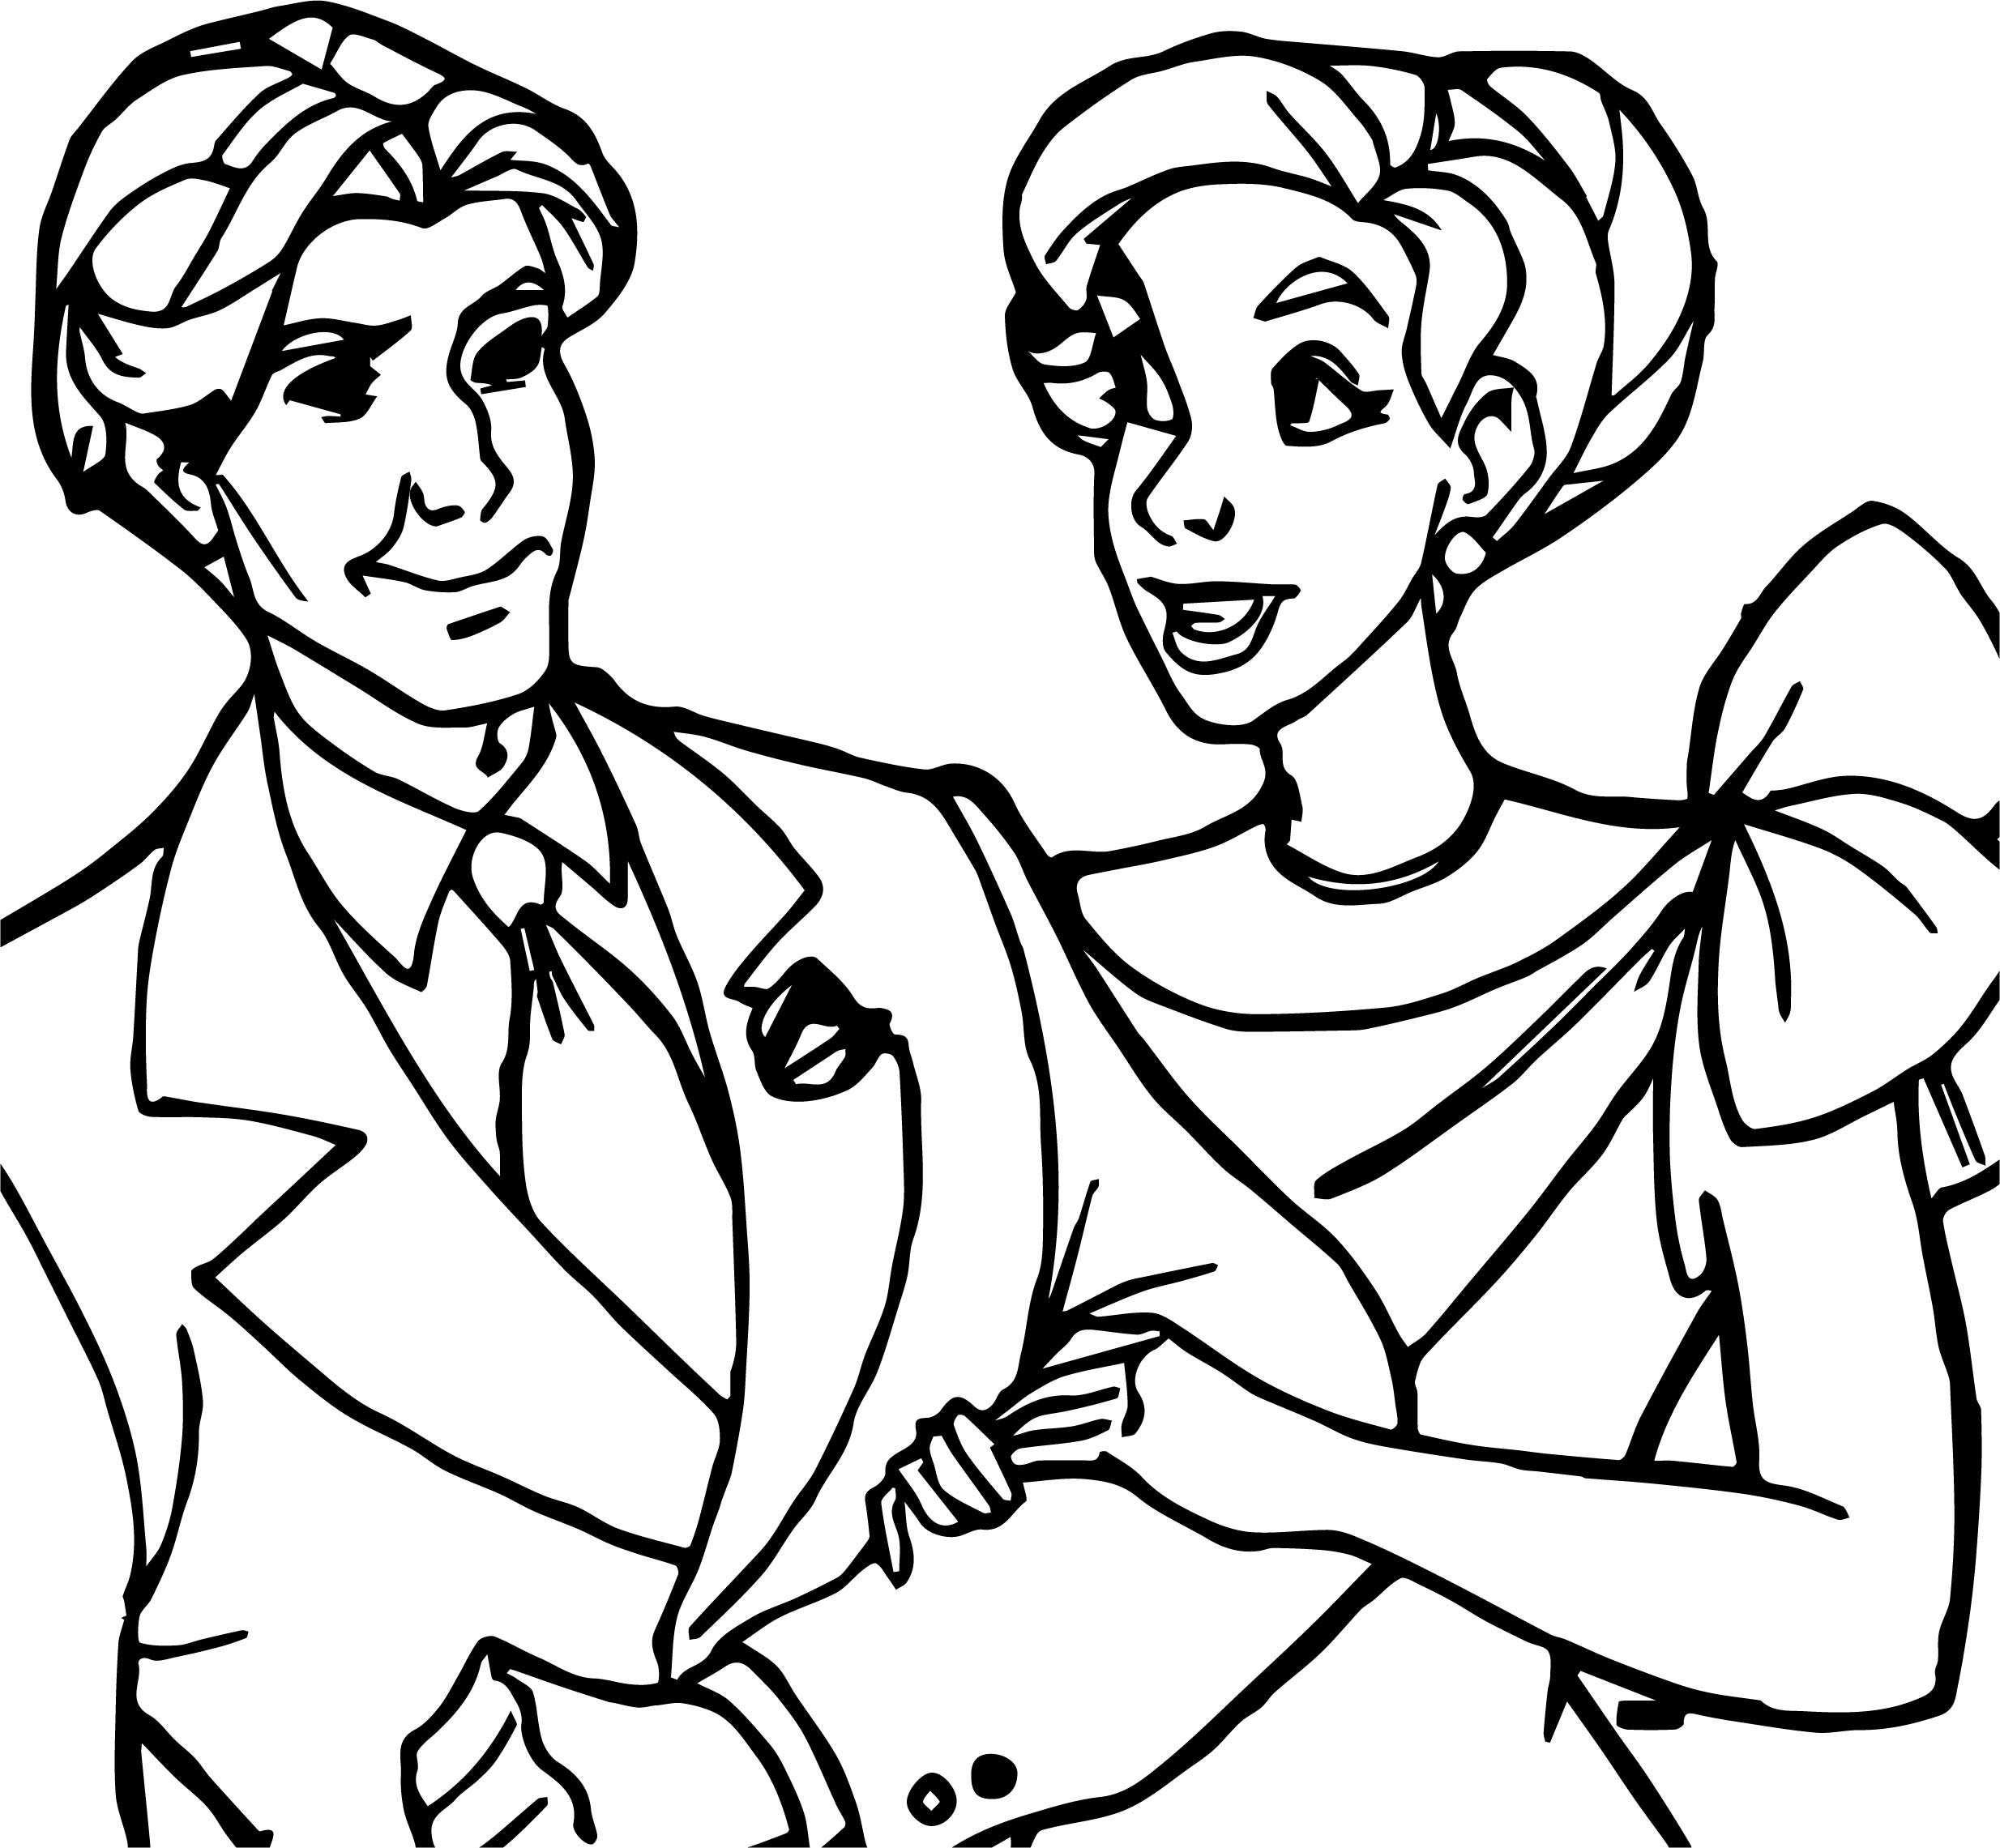 anastasia couple man woman coloring page wecoloringpage